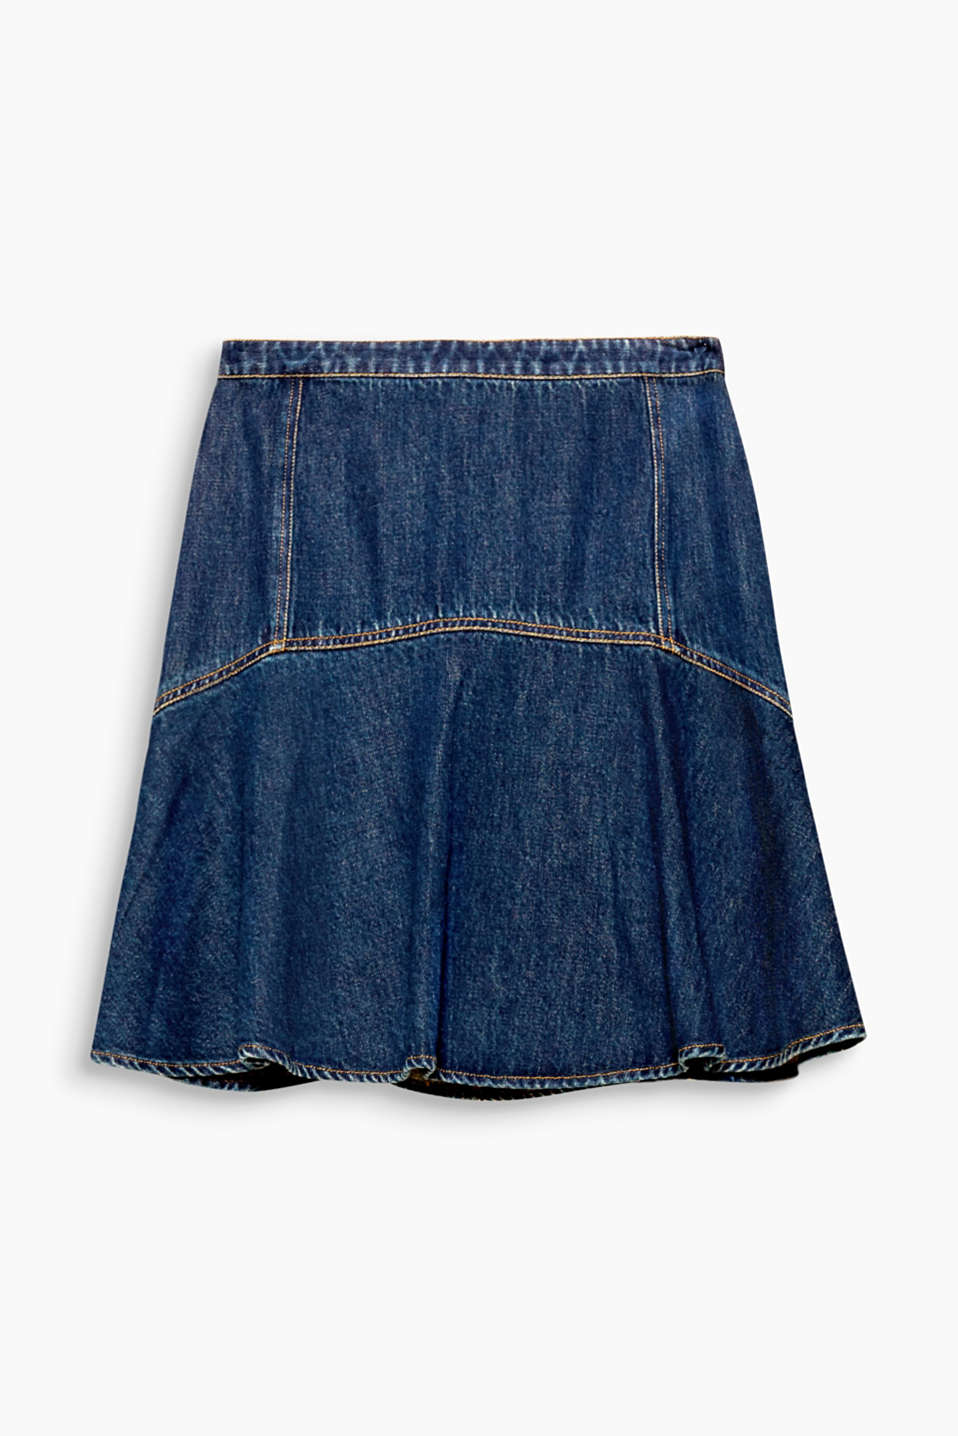 The swirling, flared design of this denim skirt introduces a playful hint of femininity.